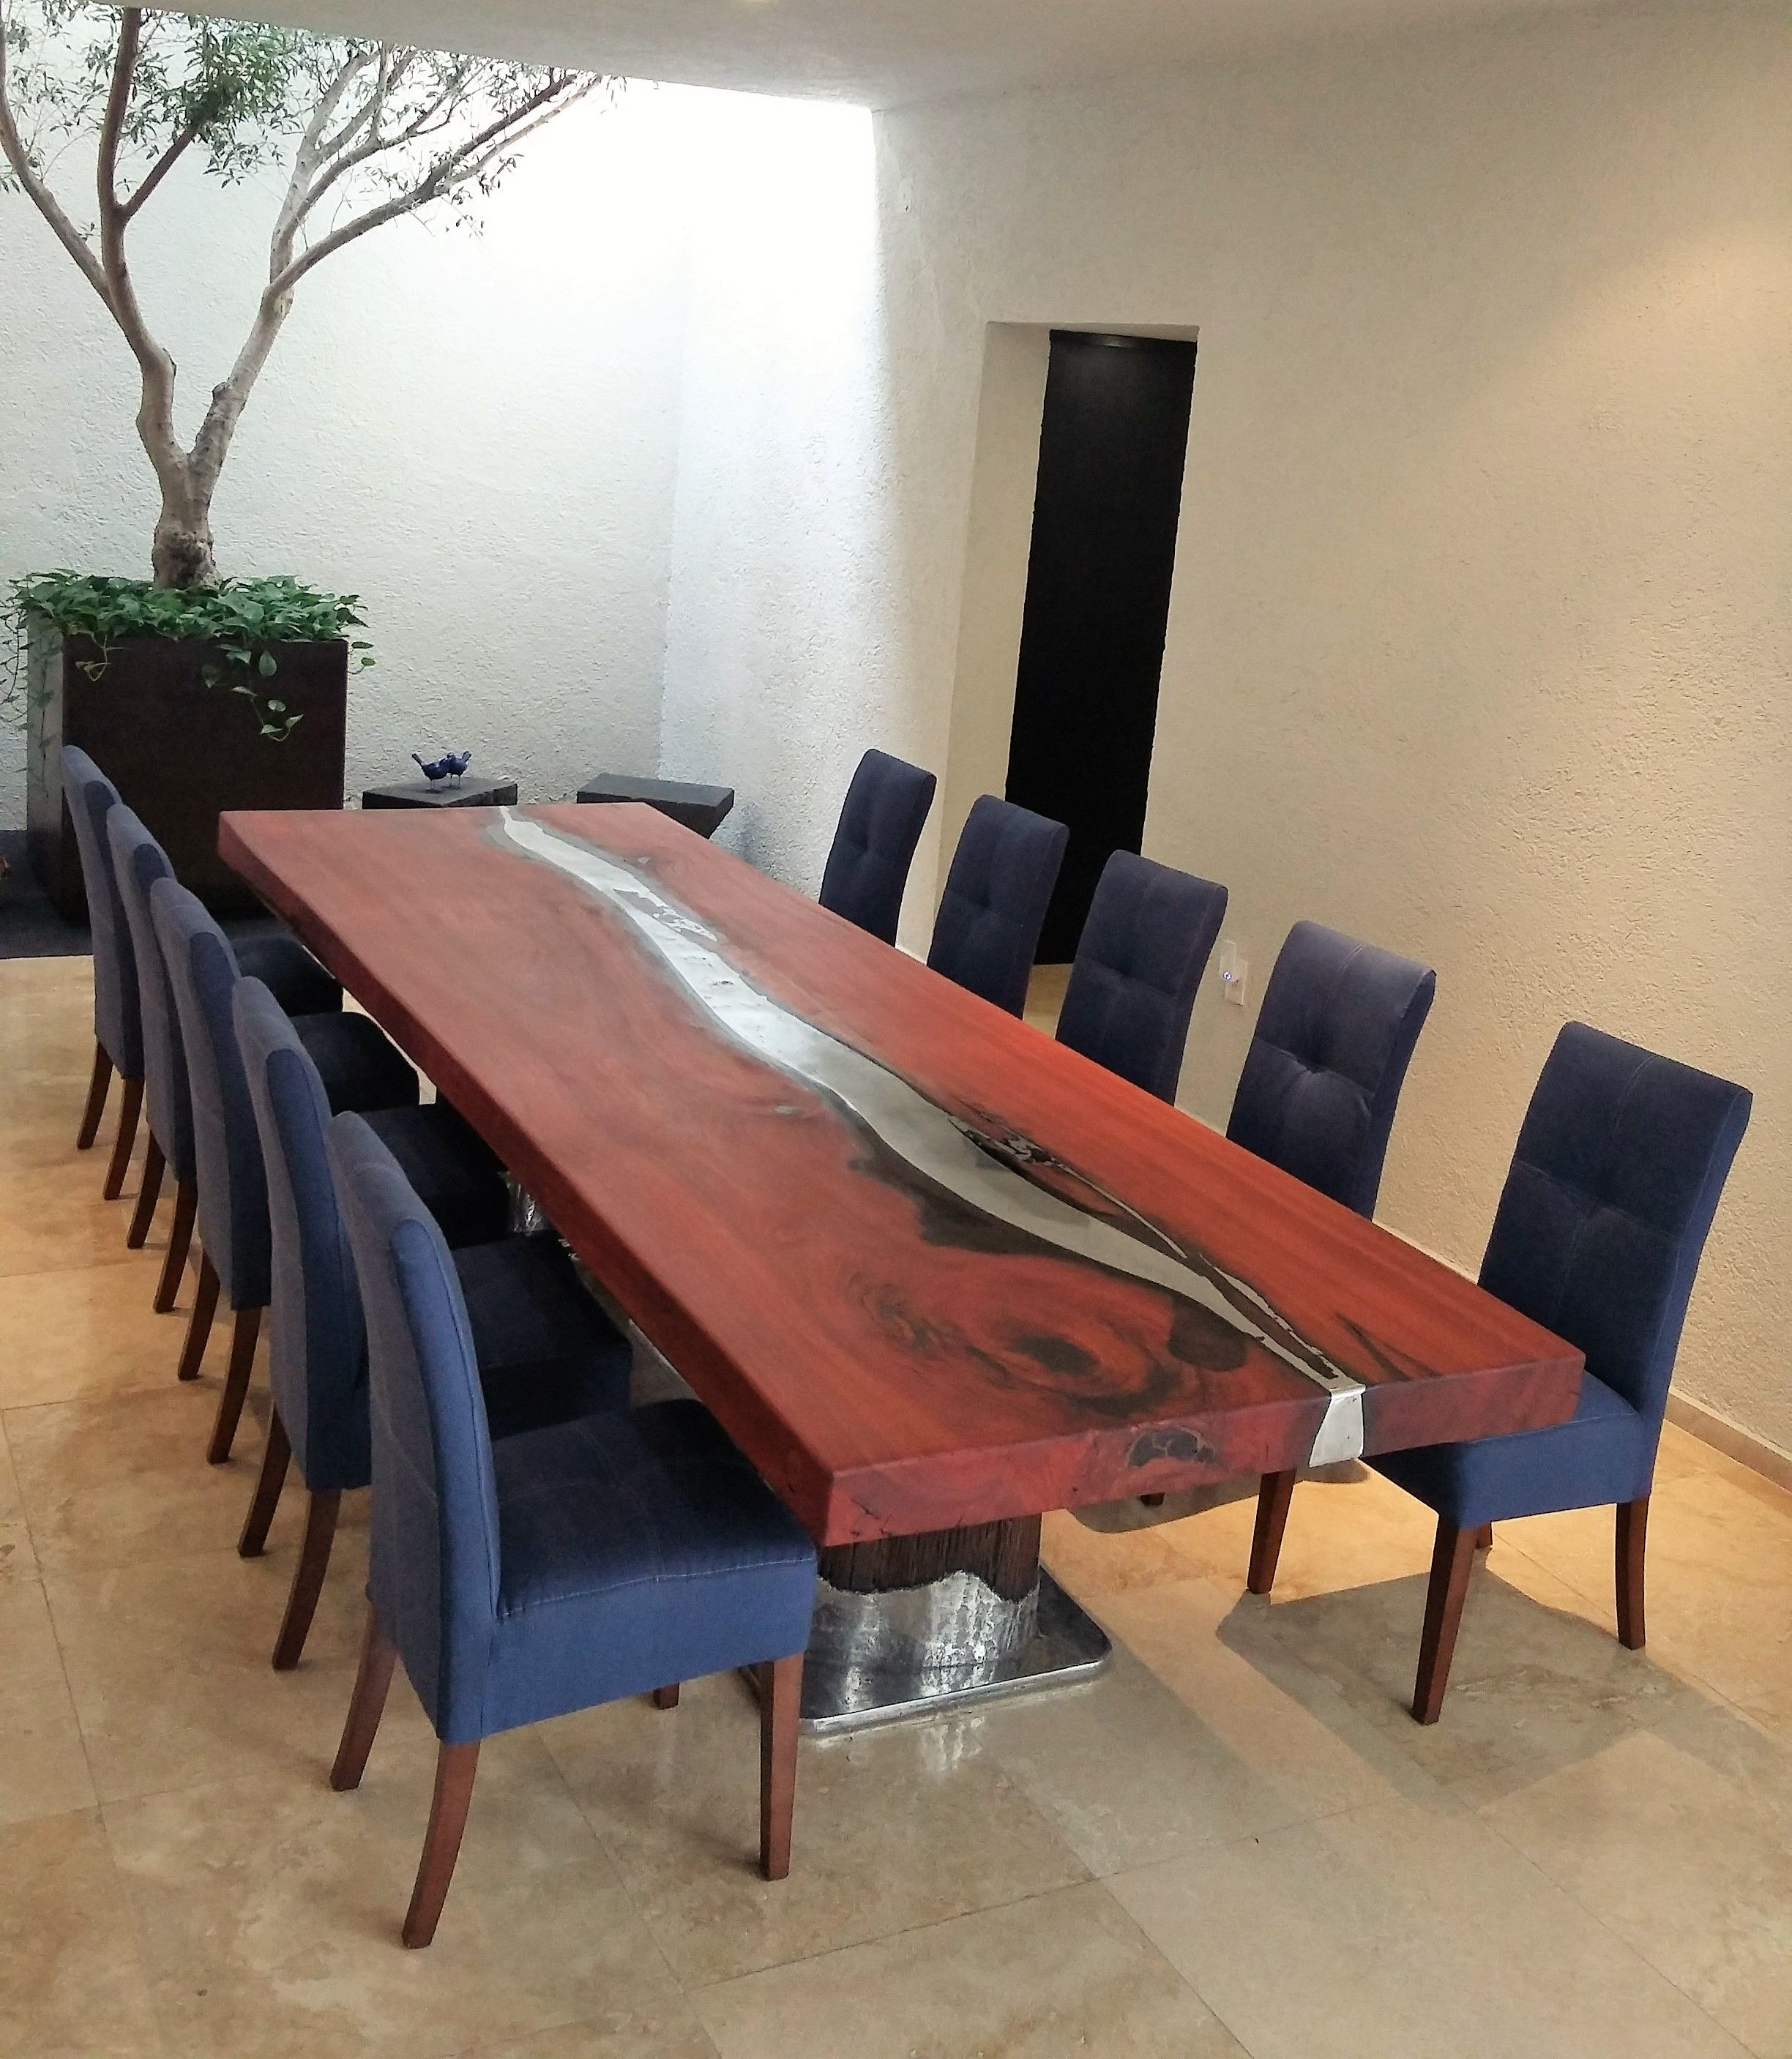 Vela dining table sustainable solid wood dining room furniture jh2 - Mesa De Comedor Madera Eucalipto Rojo Fundici N En Madera Wooden Tables Aluminumdining Roomredkitchenwoodtables